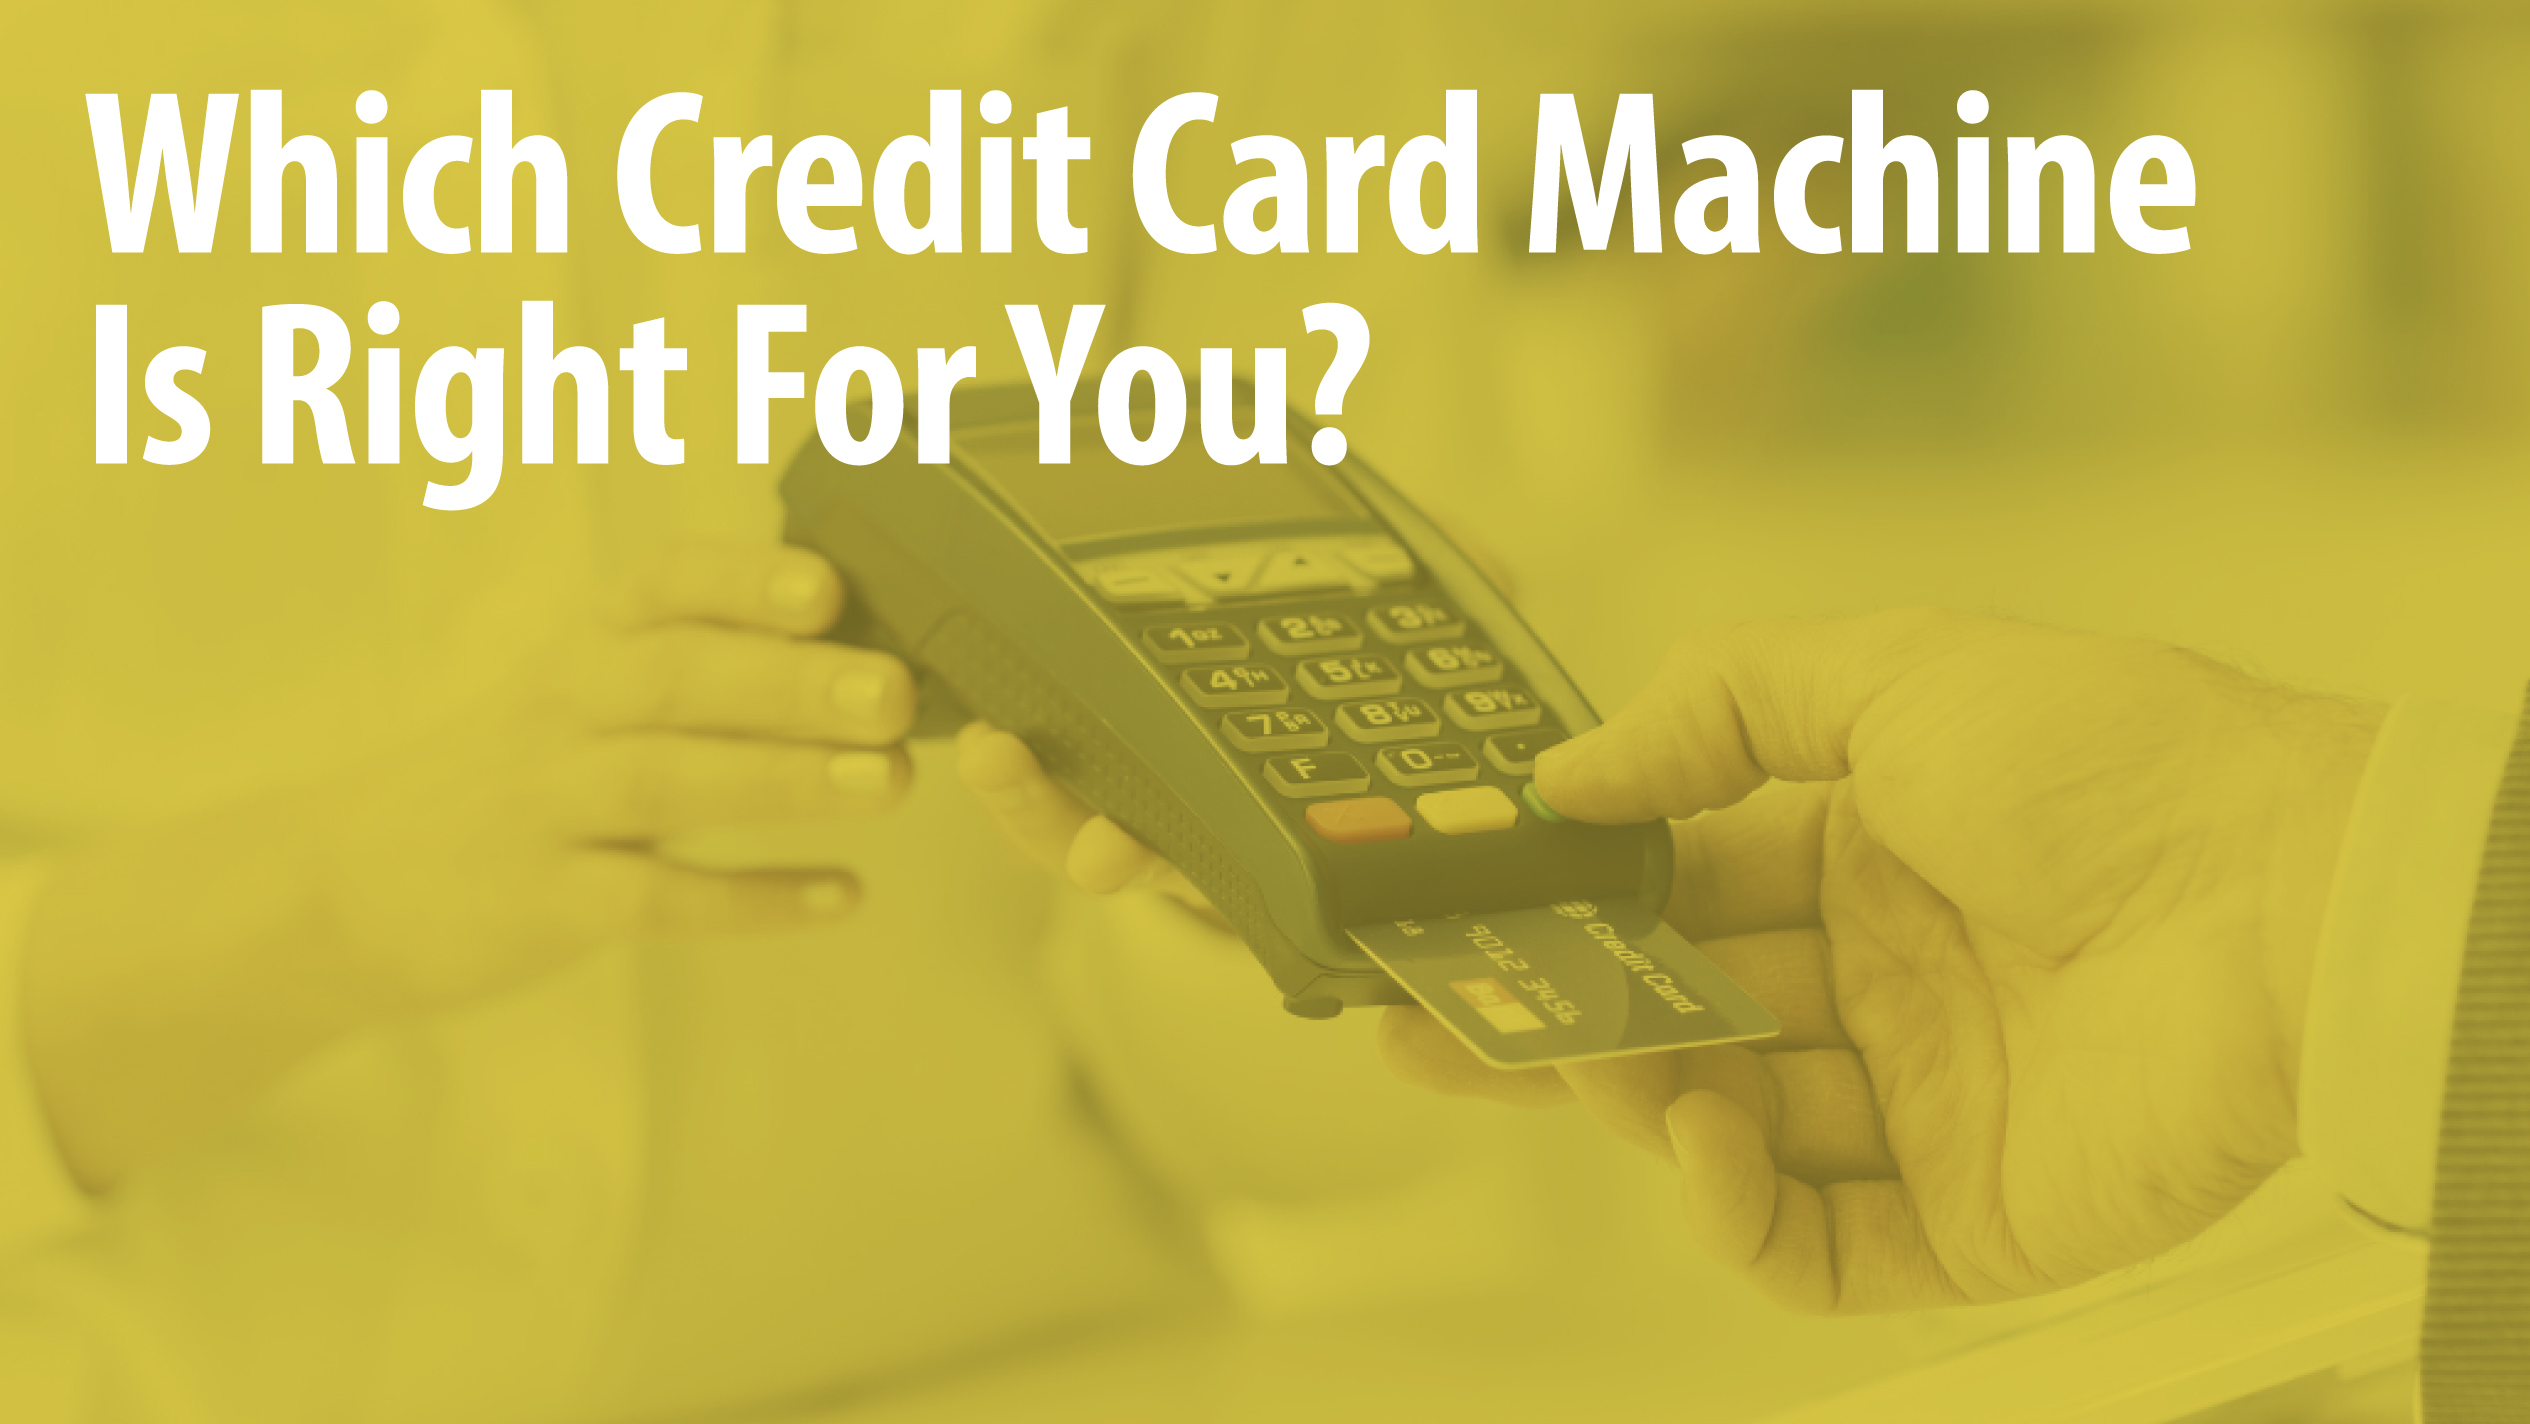 Which Credit Card Machine Is Right For You?